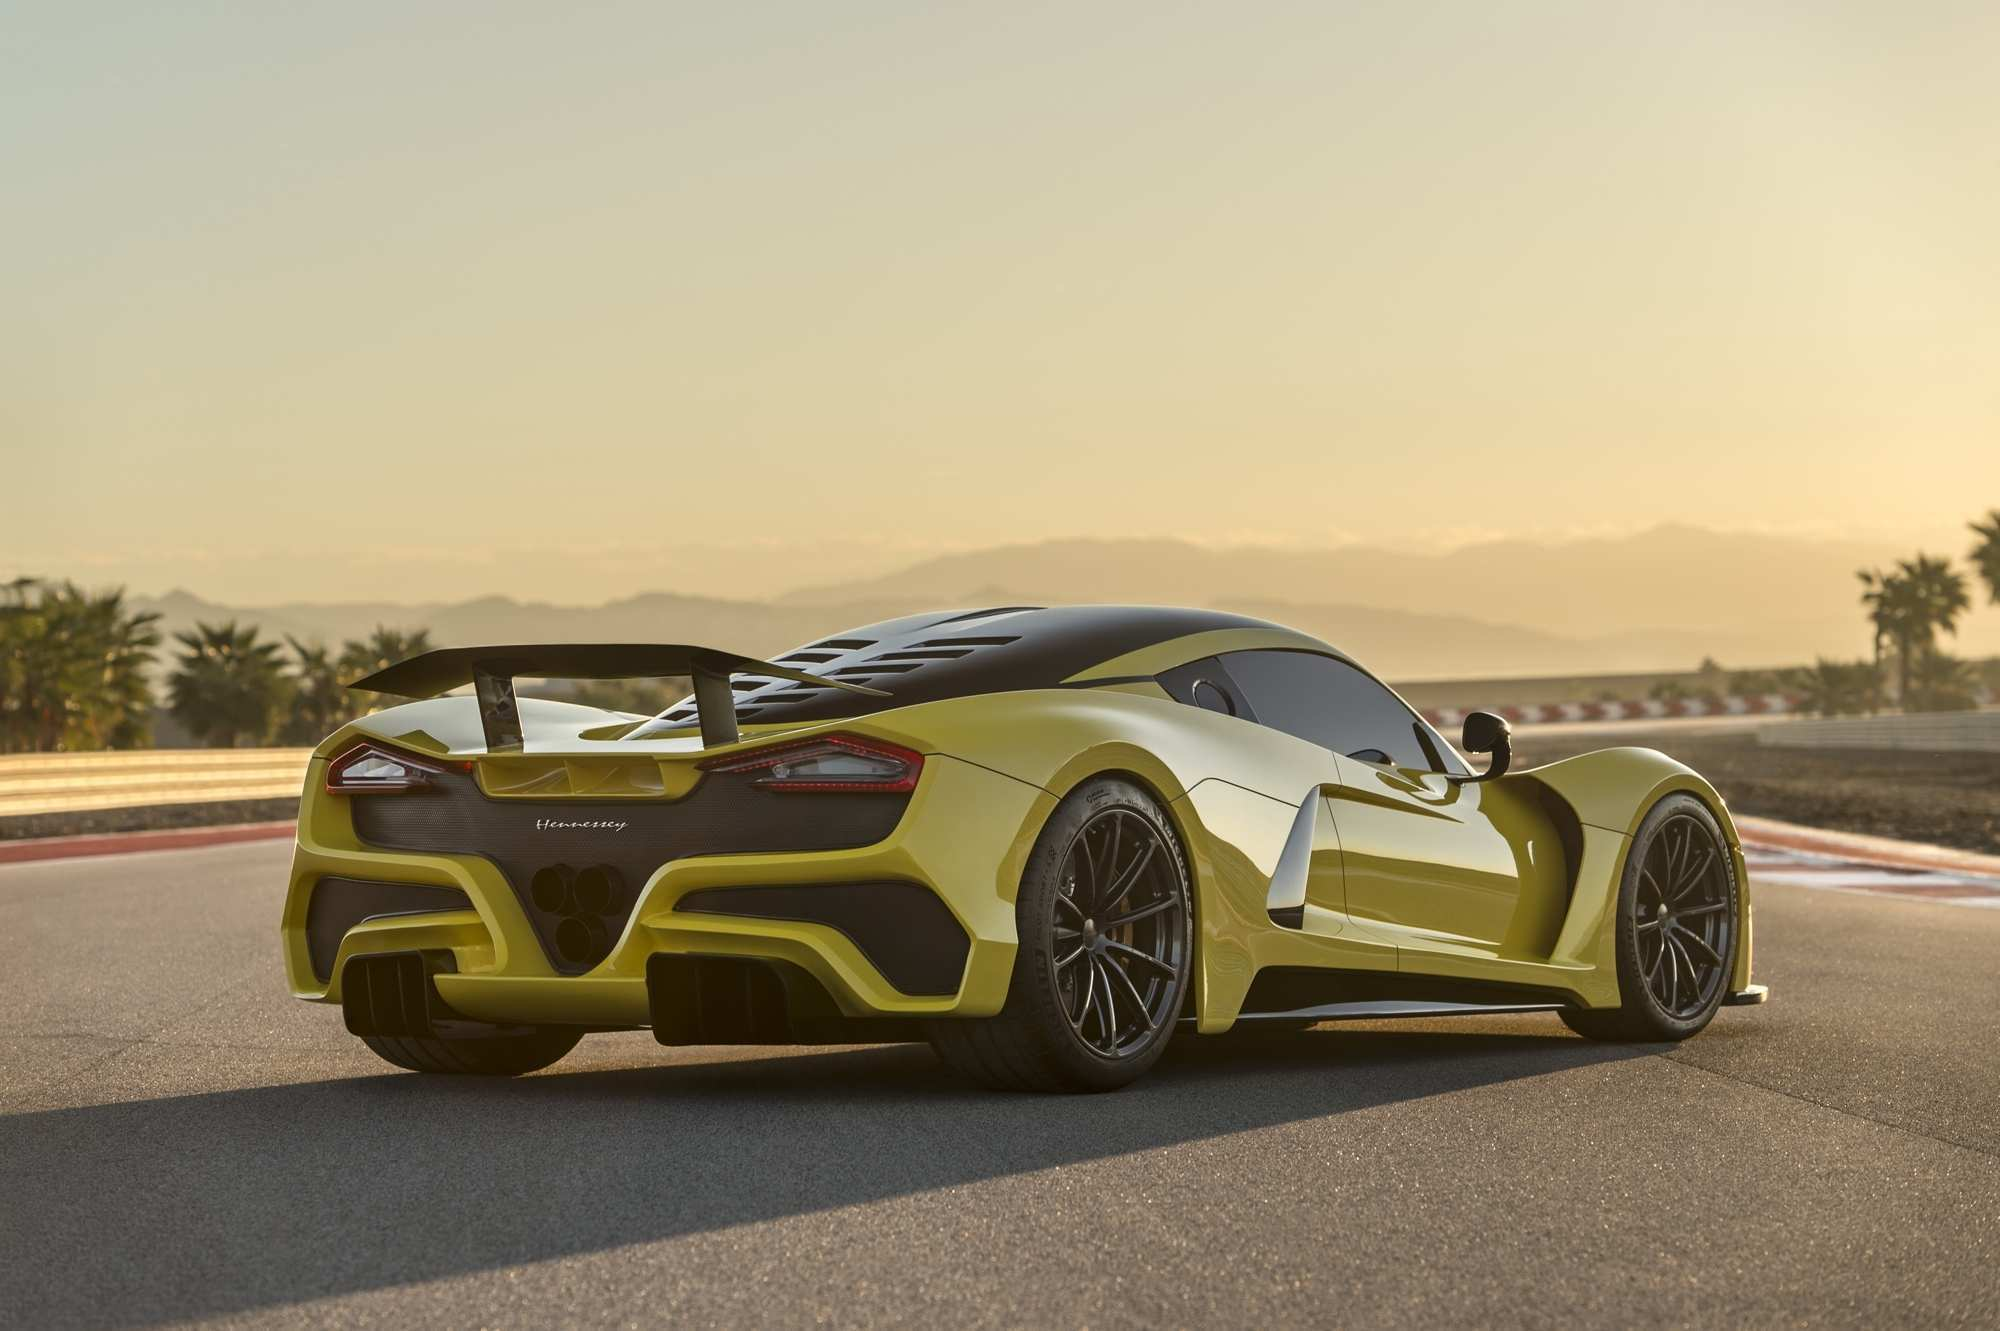 37 New 2019 Ford Venom Images with 2019 Ford Venom